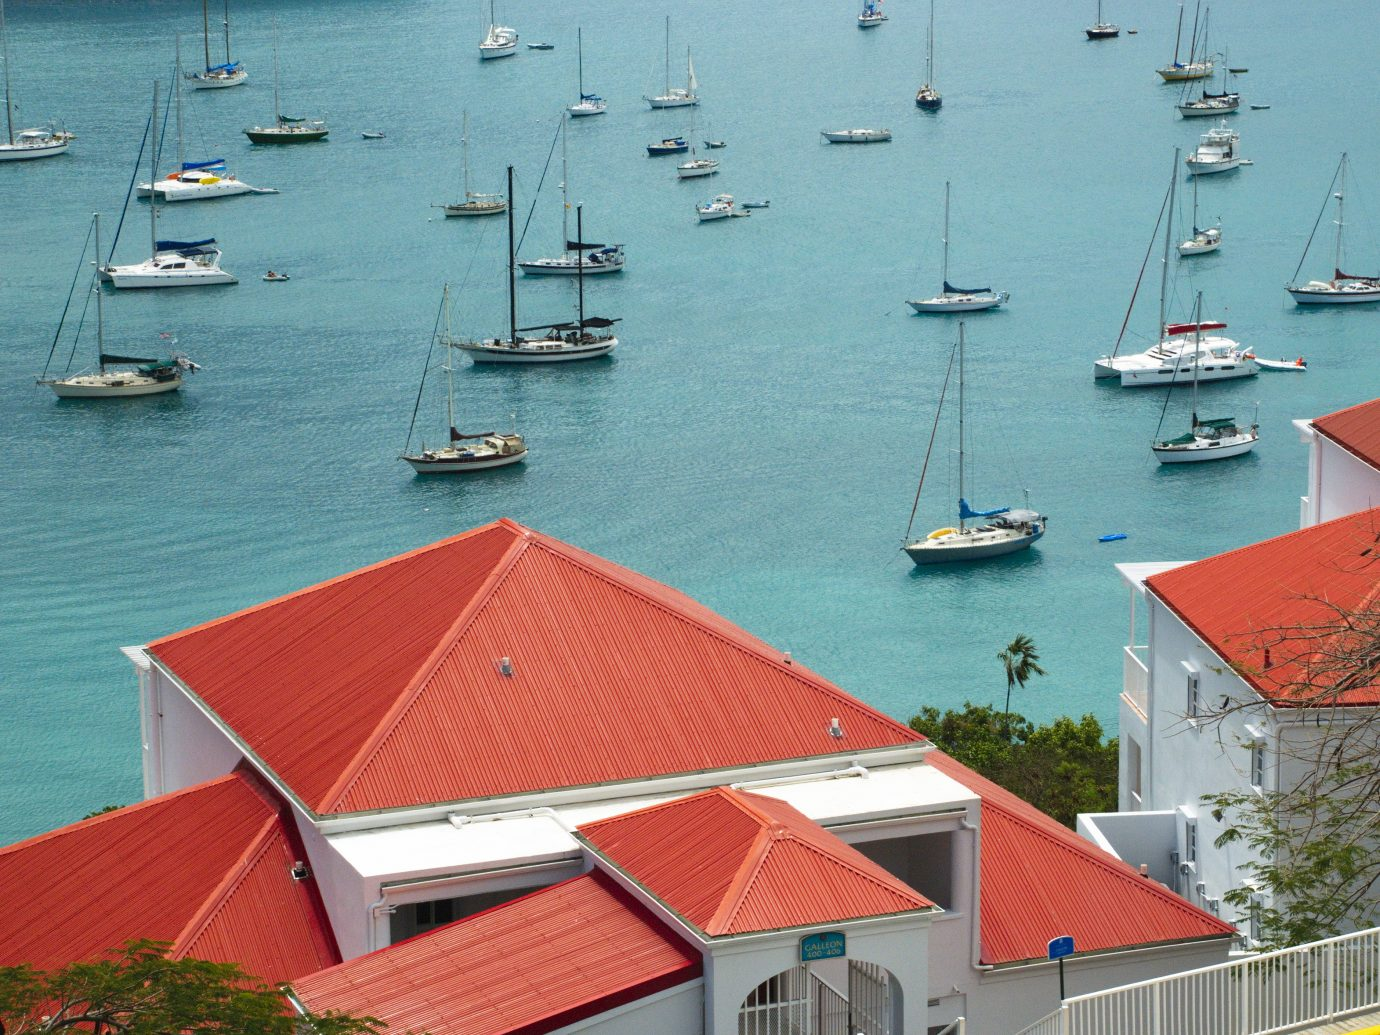 red roof tops overlooking the brilliant turquoise blue Caribbean bay with boats in downtown St. Croix, US Virgin Islands.